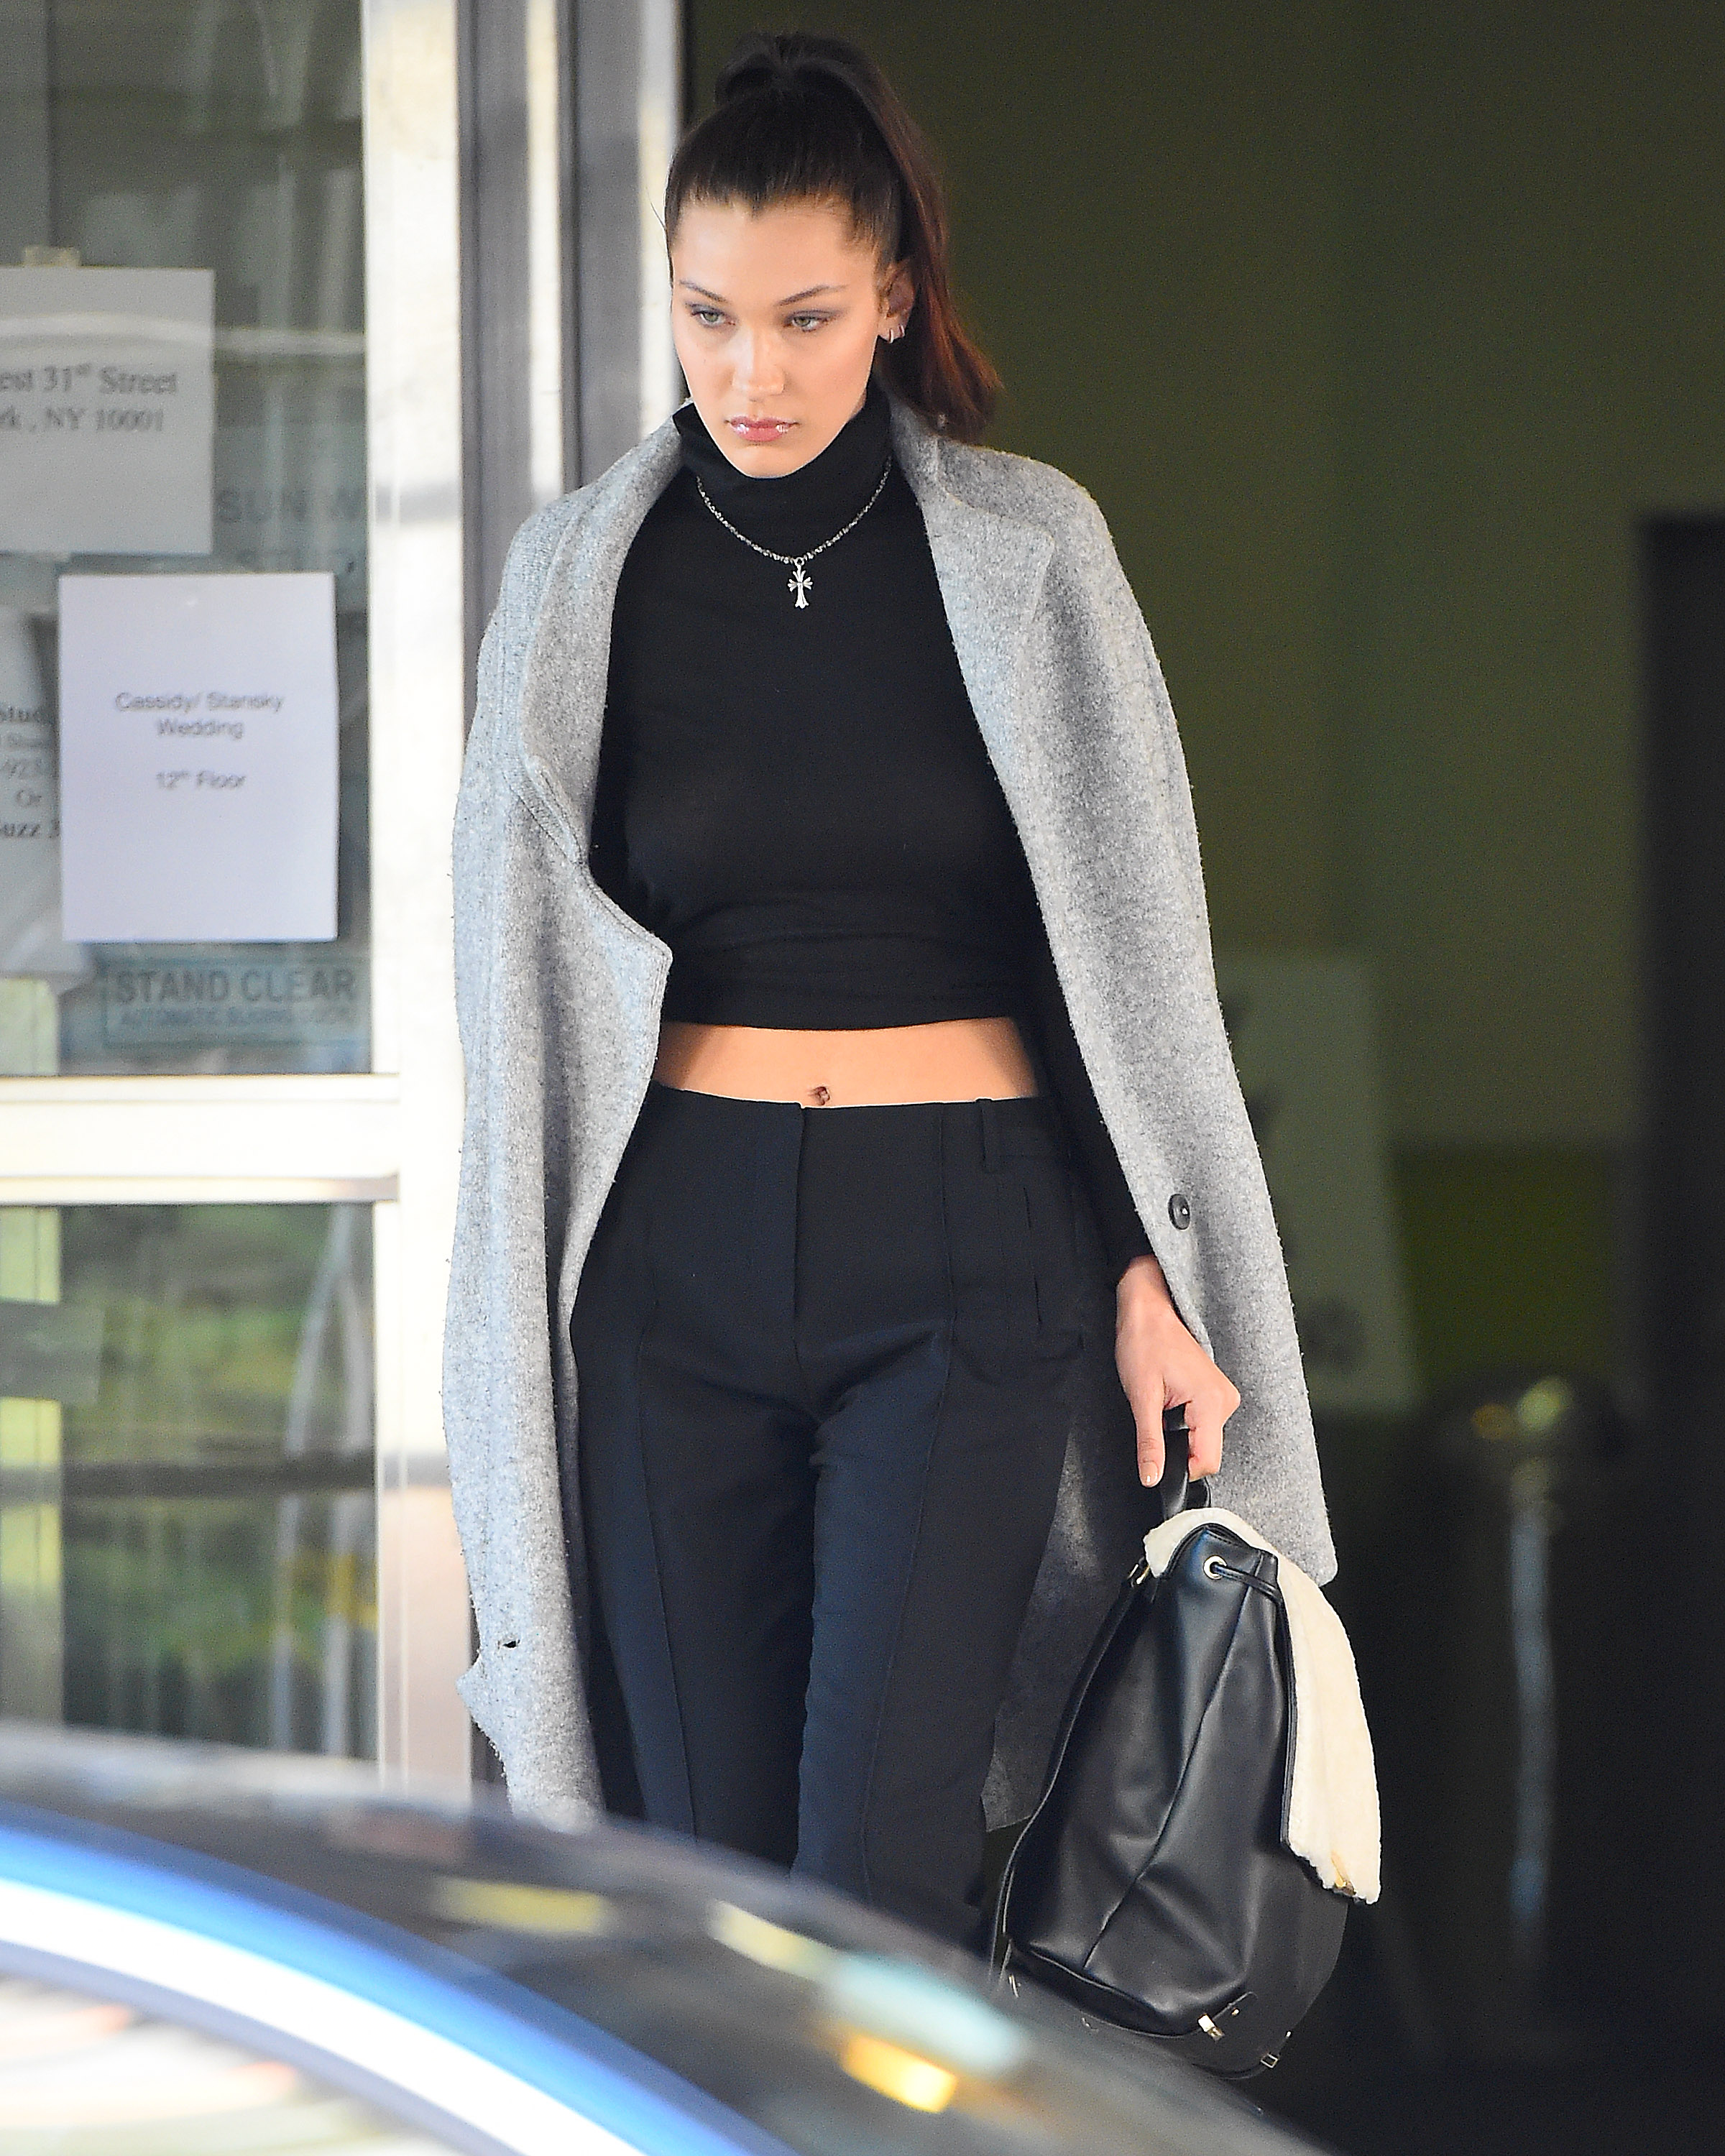 Bella Hadid seen wearing a black crop top and black slacks in New York City Pictured: Bella Hadid Ref: SPL1176729 141115 Picture by: Robert O'neil/Splash News Splash News and Pictures Los Angeles:310-821-2666 New York: 212-619-2666 London: 870-934-2666 photodesk@splashnews.com